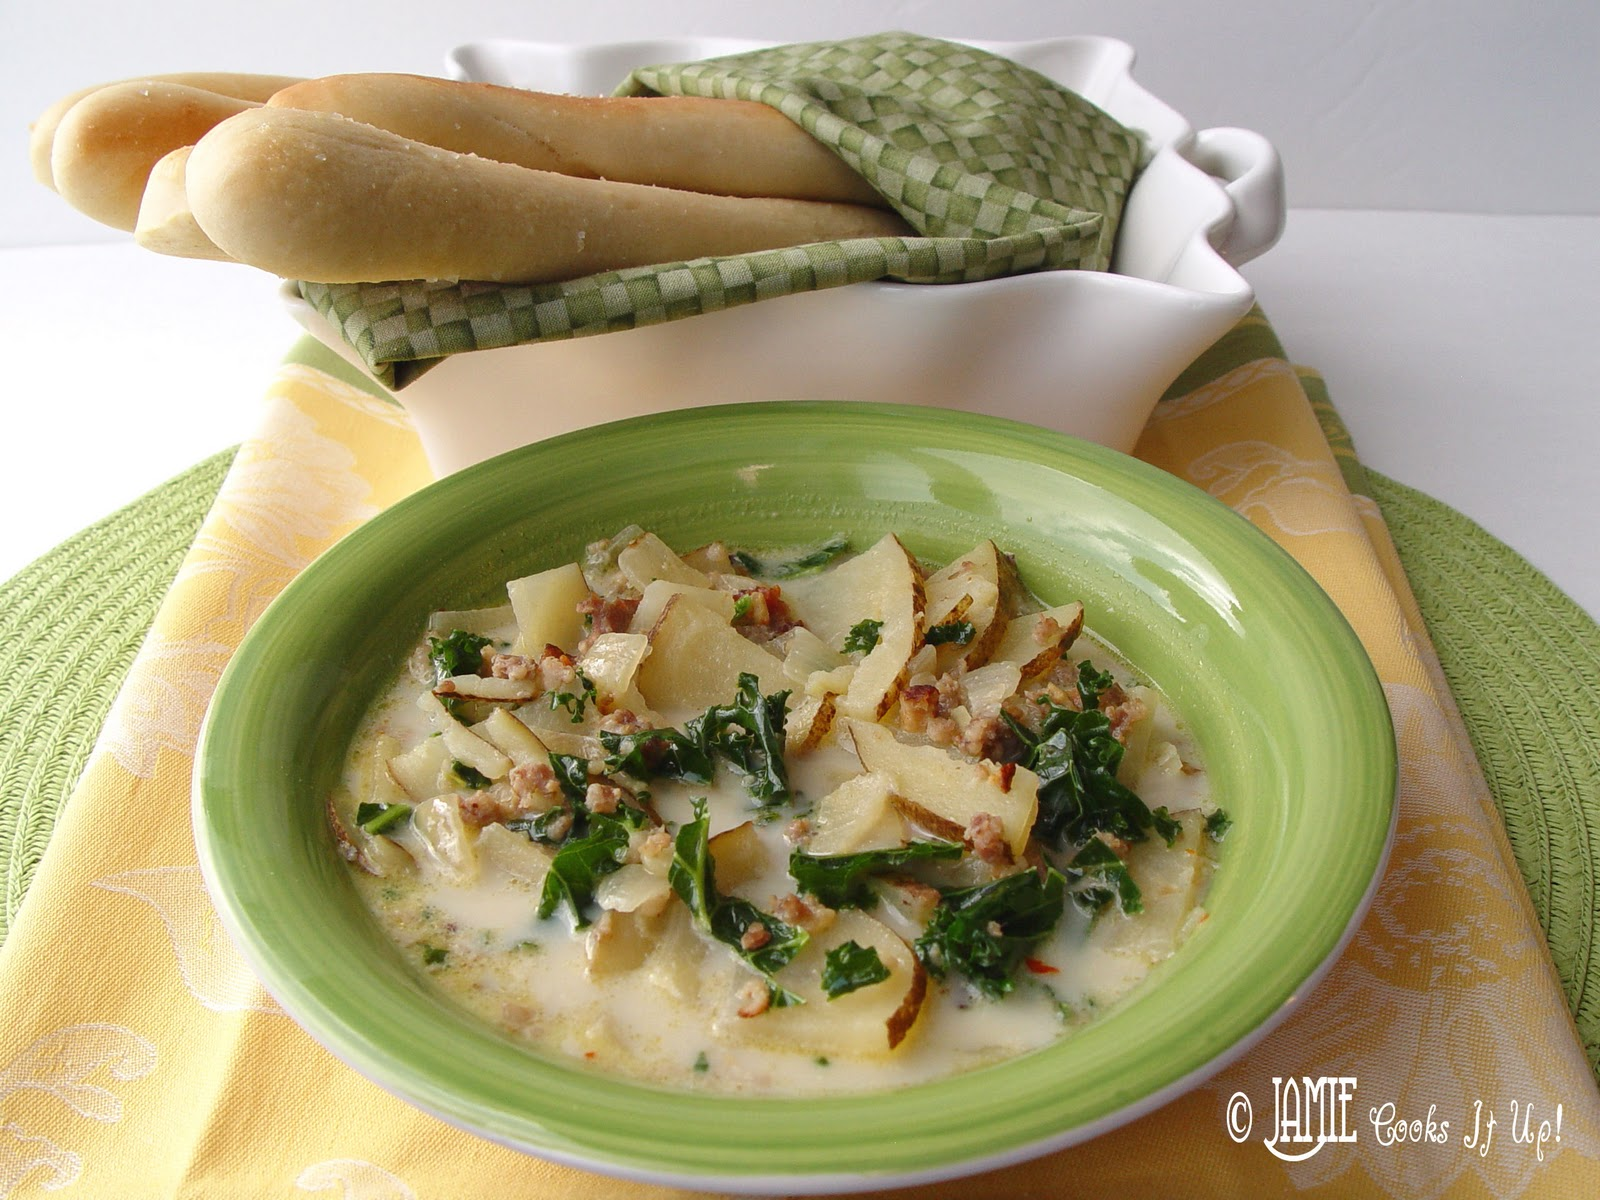 Zuppa toscana - What kind of soup does olive garden have ...